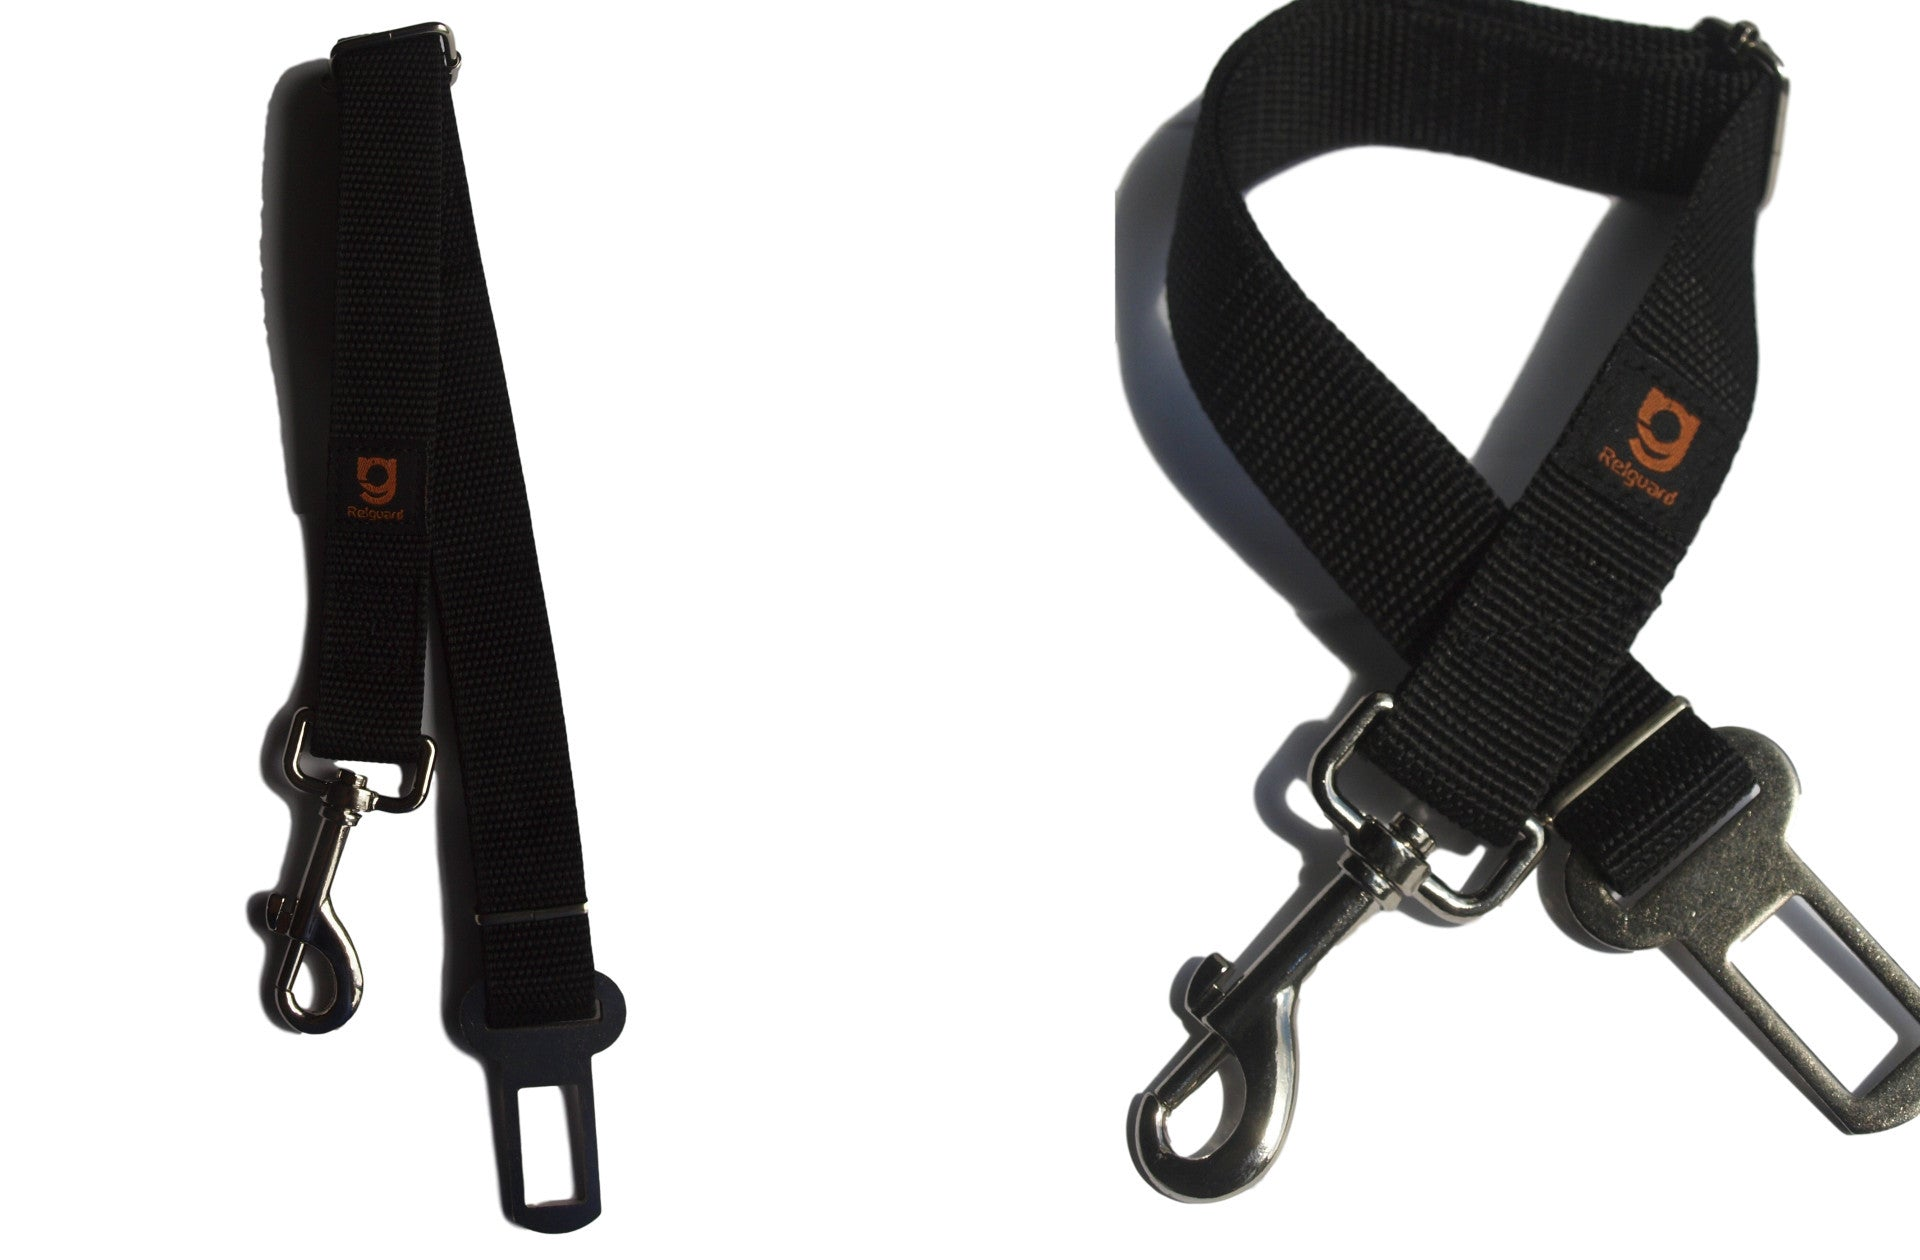 Relguard Car Seat Belt for Dogs